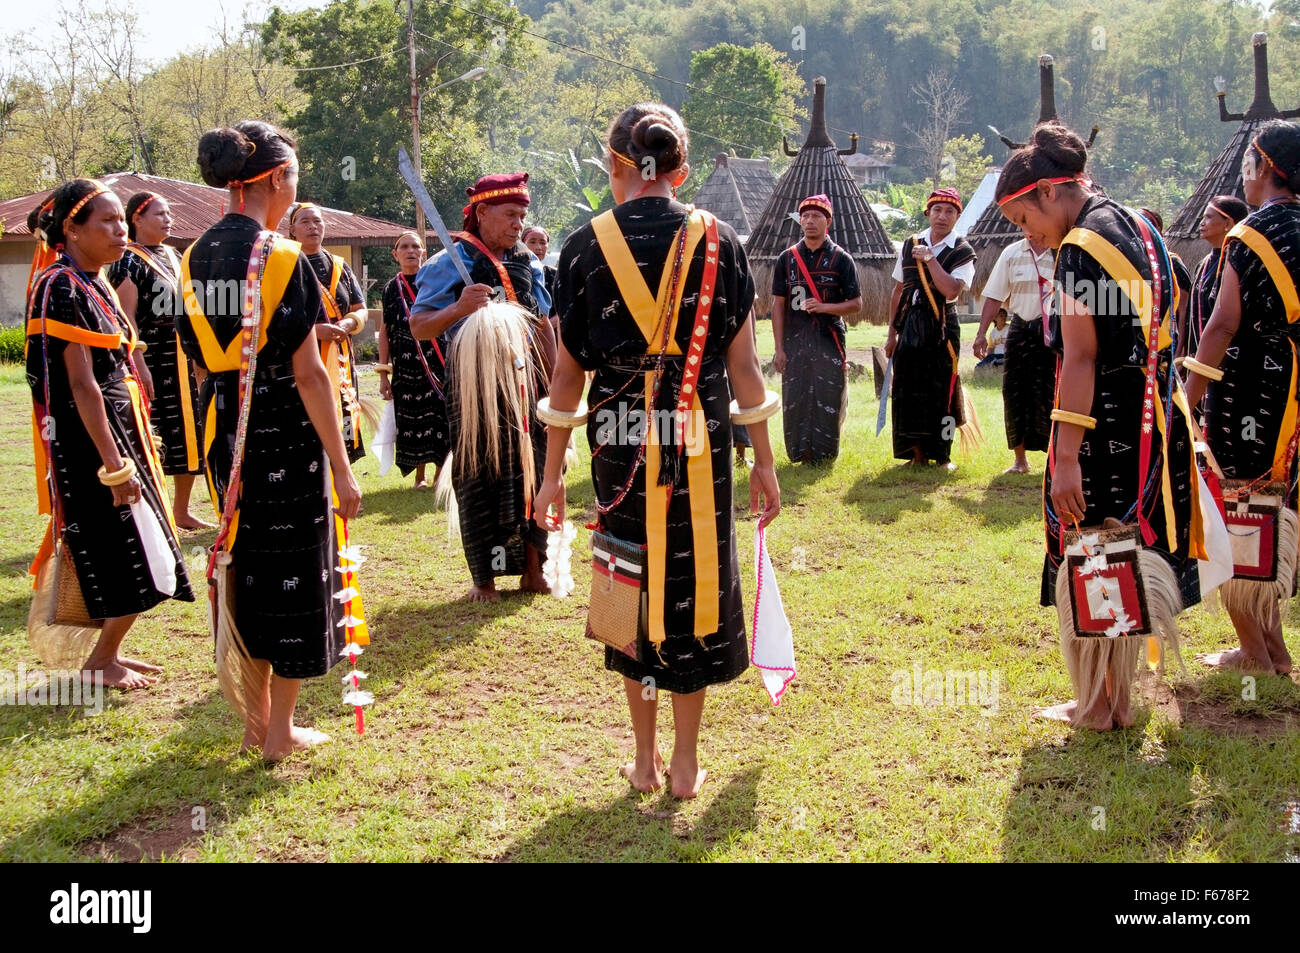 People Dancing At Ceremony At Wagomenge Flores Indonesia Stock Photo